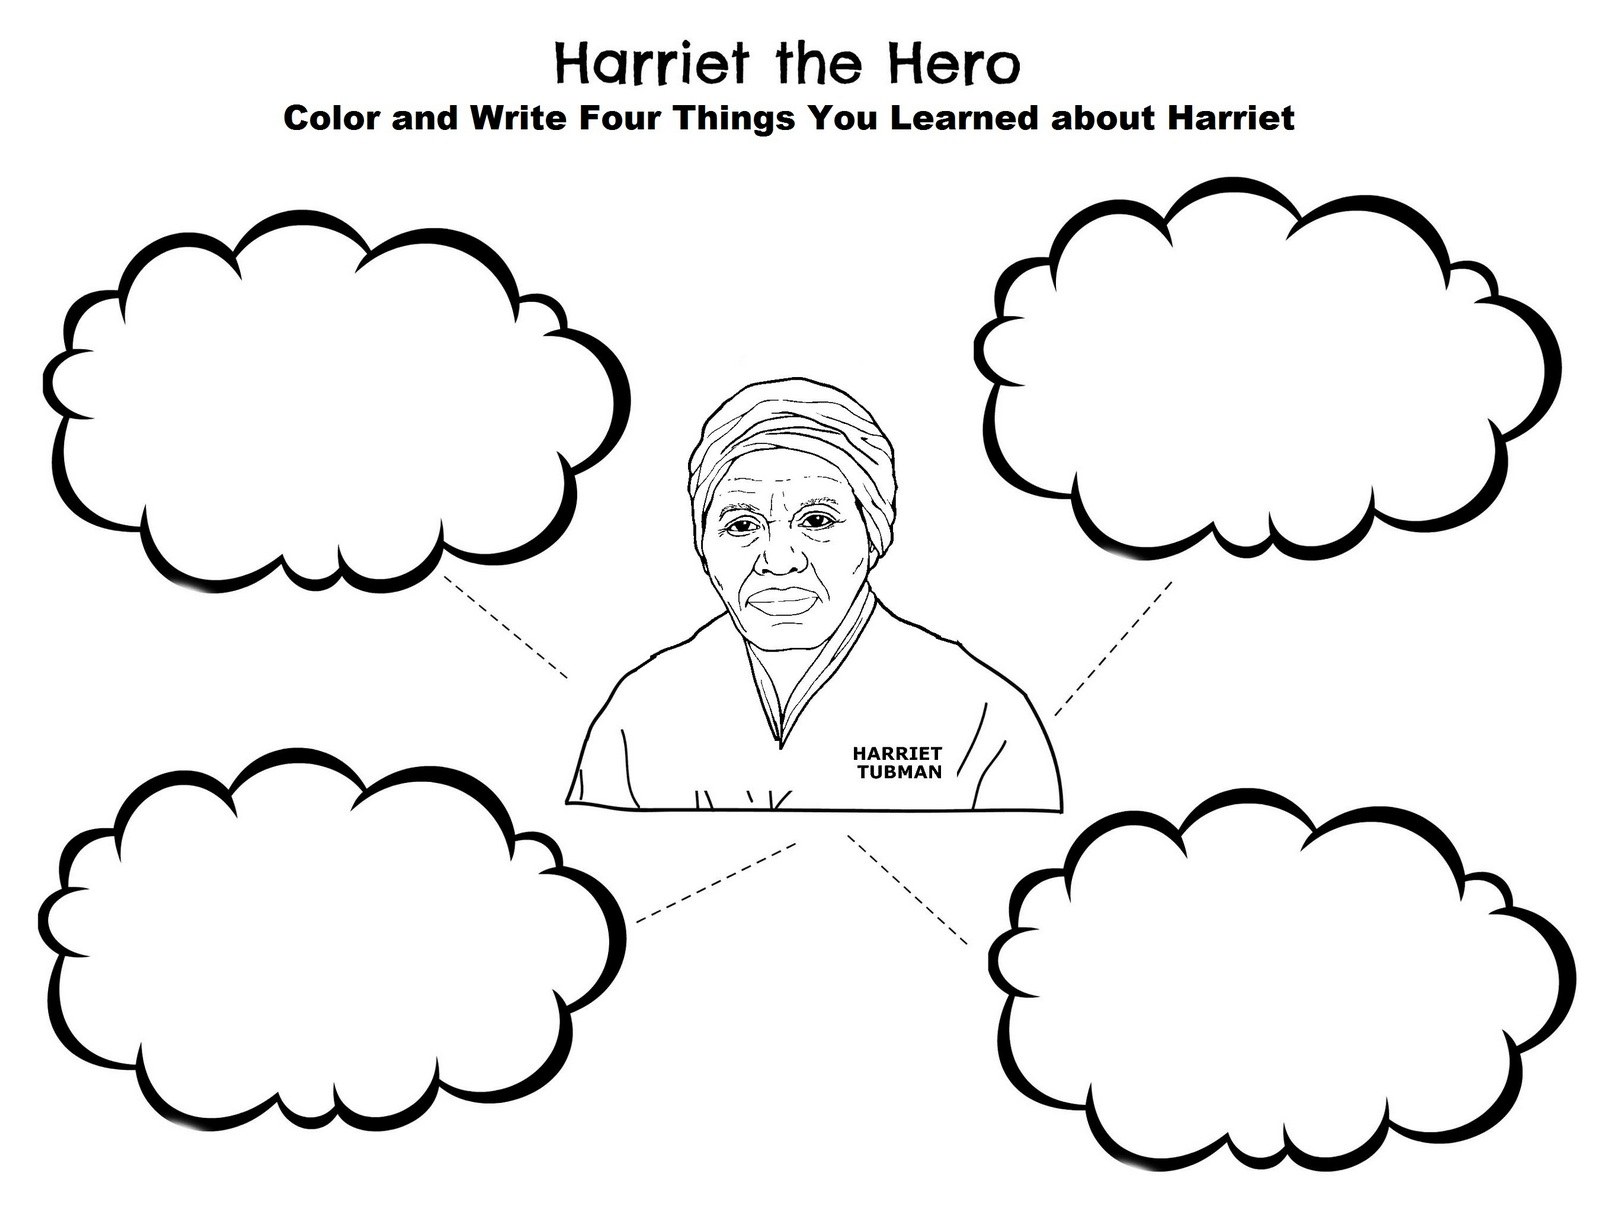 Harriet Tubman the hero coloring page